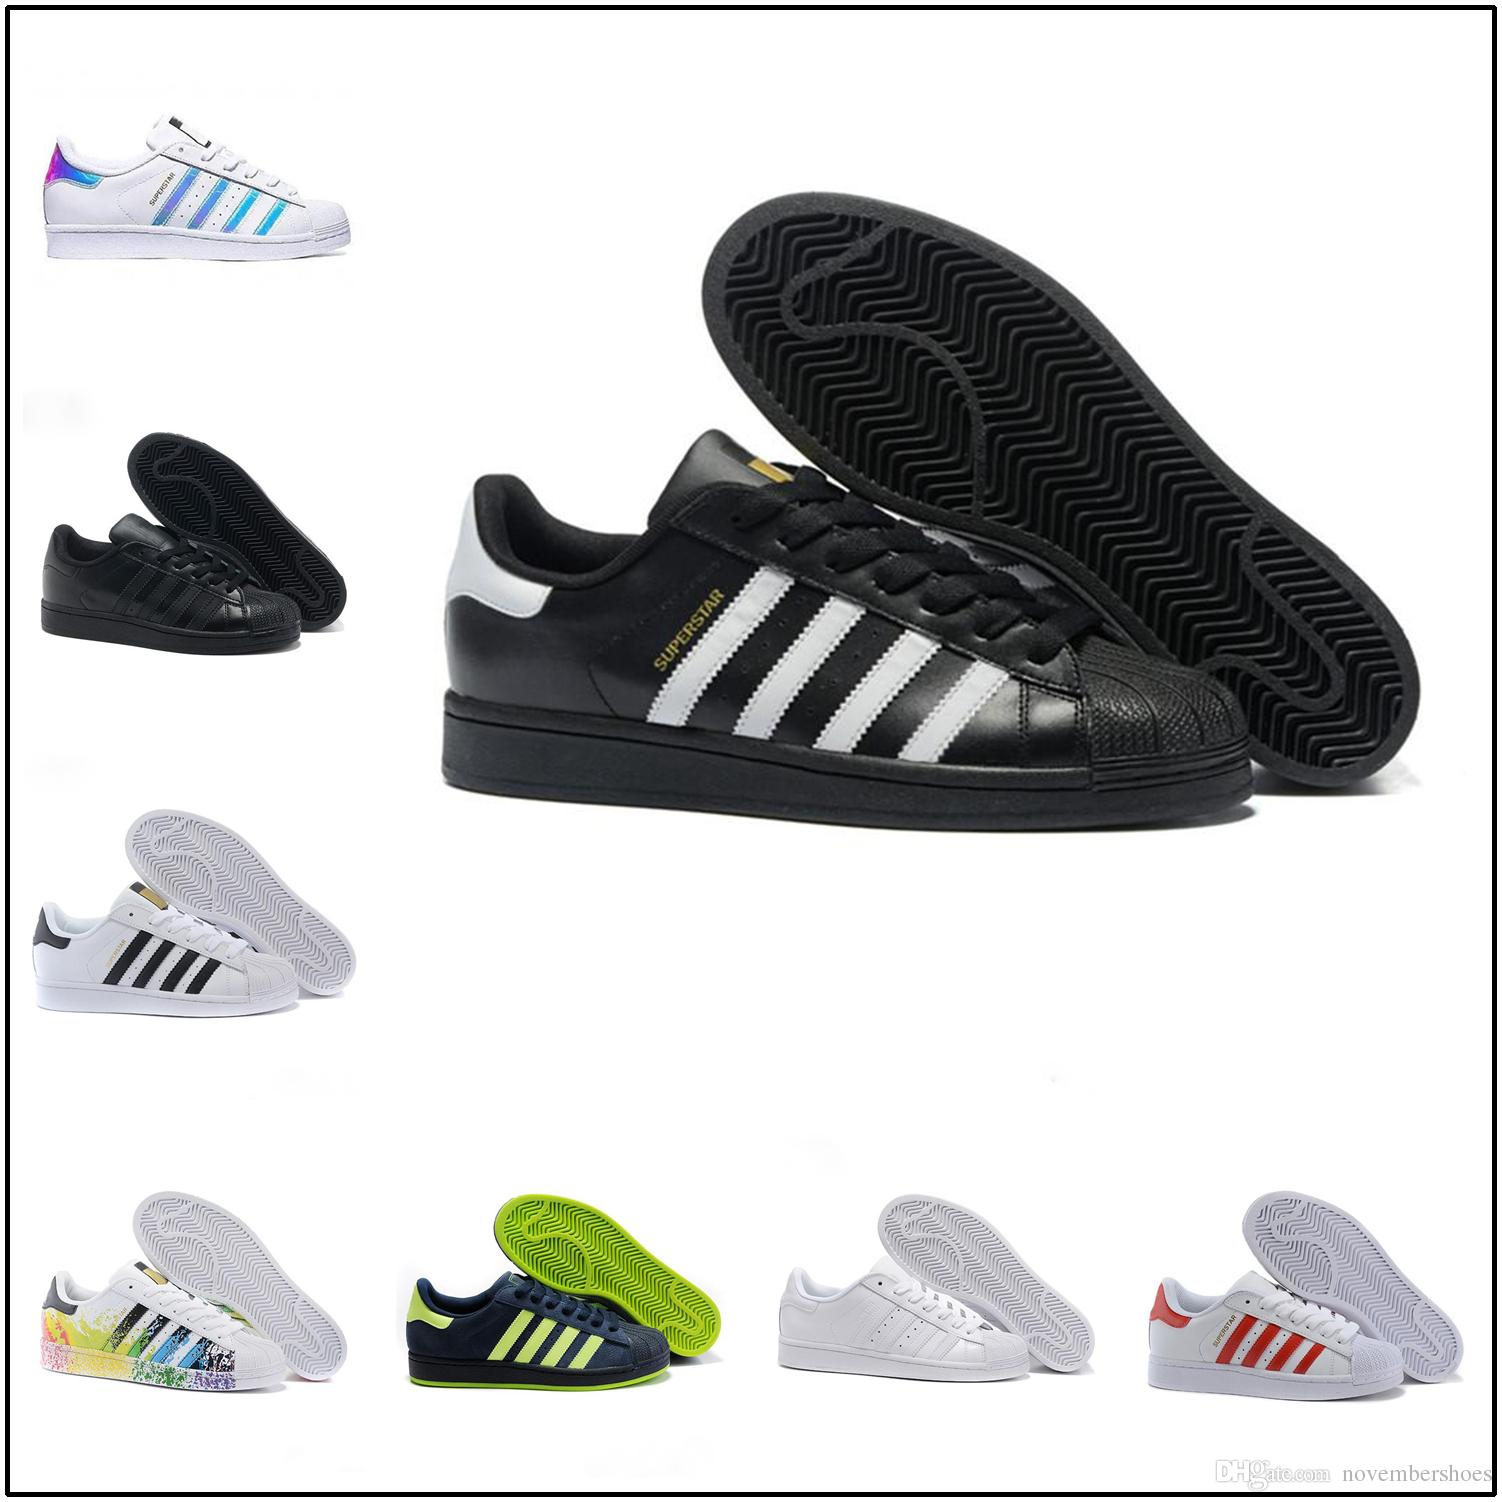 Taille De Couleurs Chaussures 2018 Sneakers 44 Hommes Super Star Appartements Femmes 36 Femme 15 Adidas Superstar Marche Yv7b6gyf